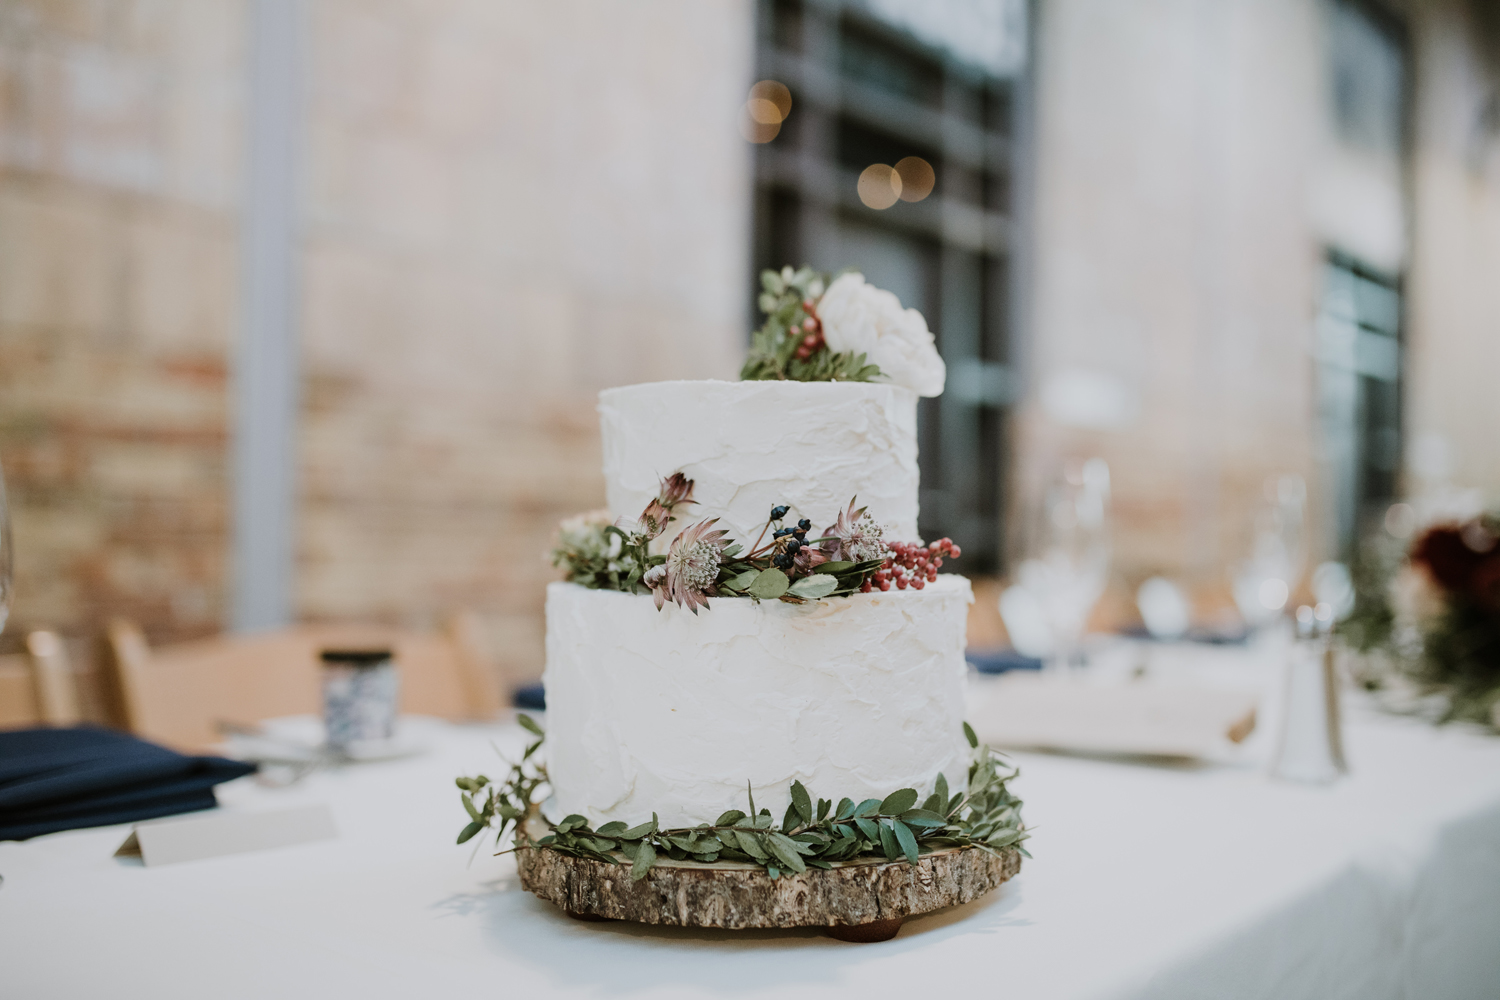 Crumb & Berry Toronto Wedding Cake